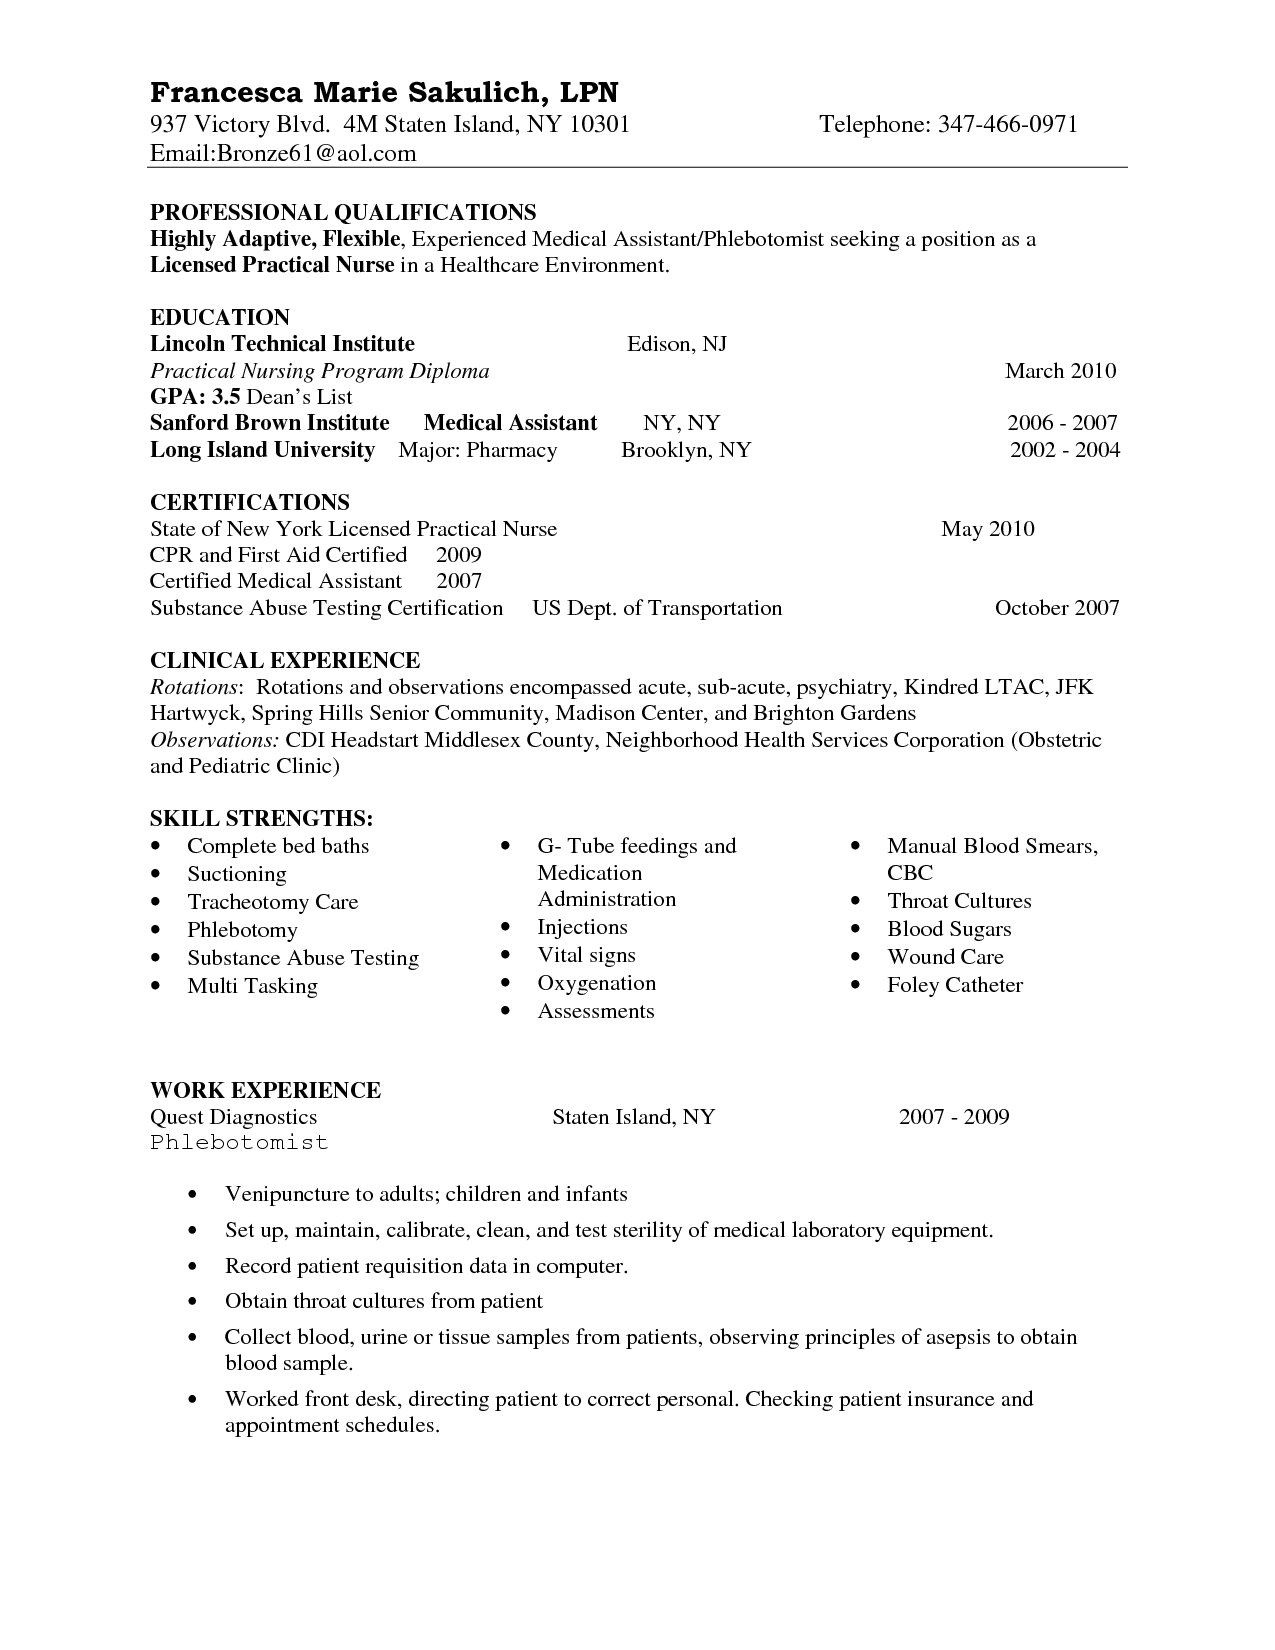 Beautiful Entry Level LPN Resume Sample On Entry Level Lpn Resume